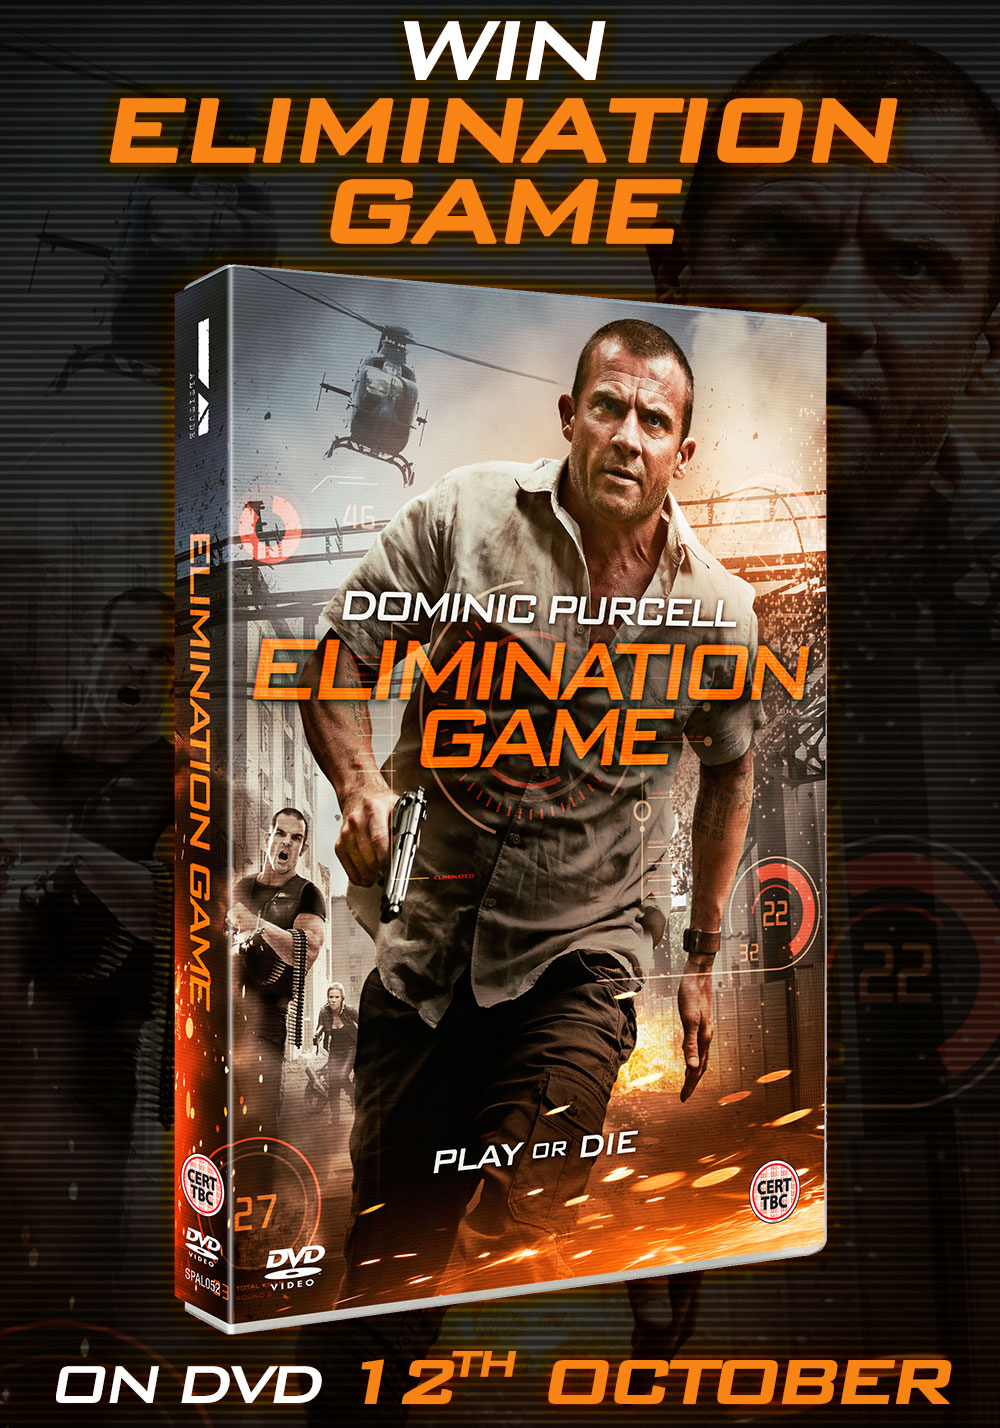 Elimination Game Movie Win a Copy of Elimination Game